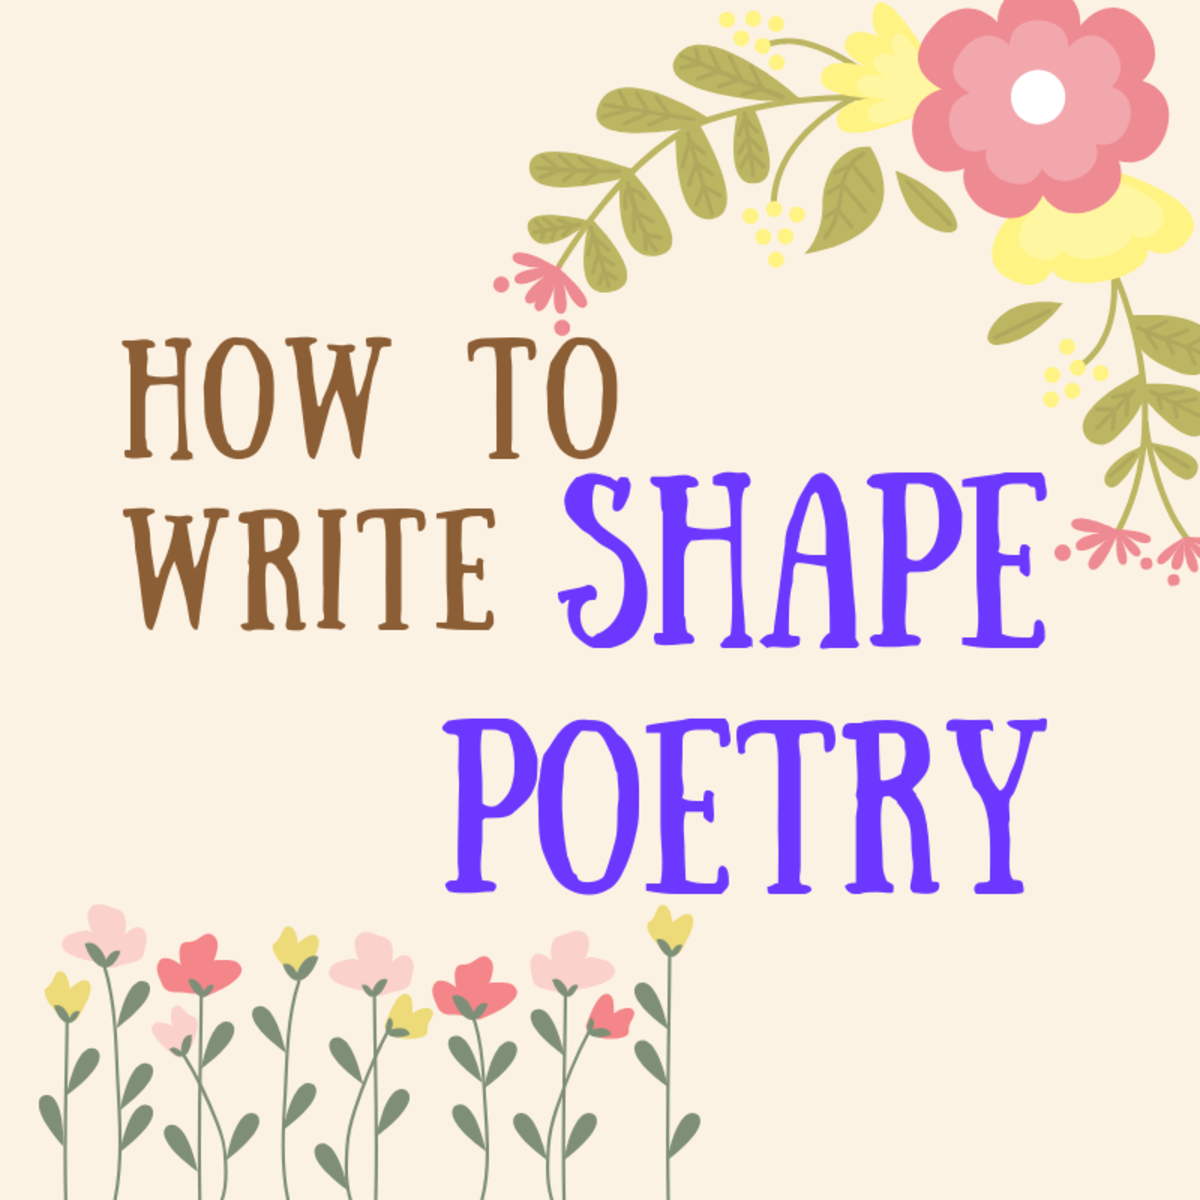 Read on to learn how to shape your poems like pottery.